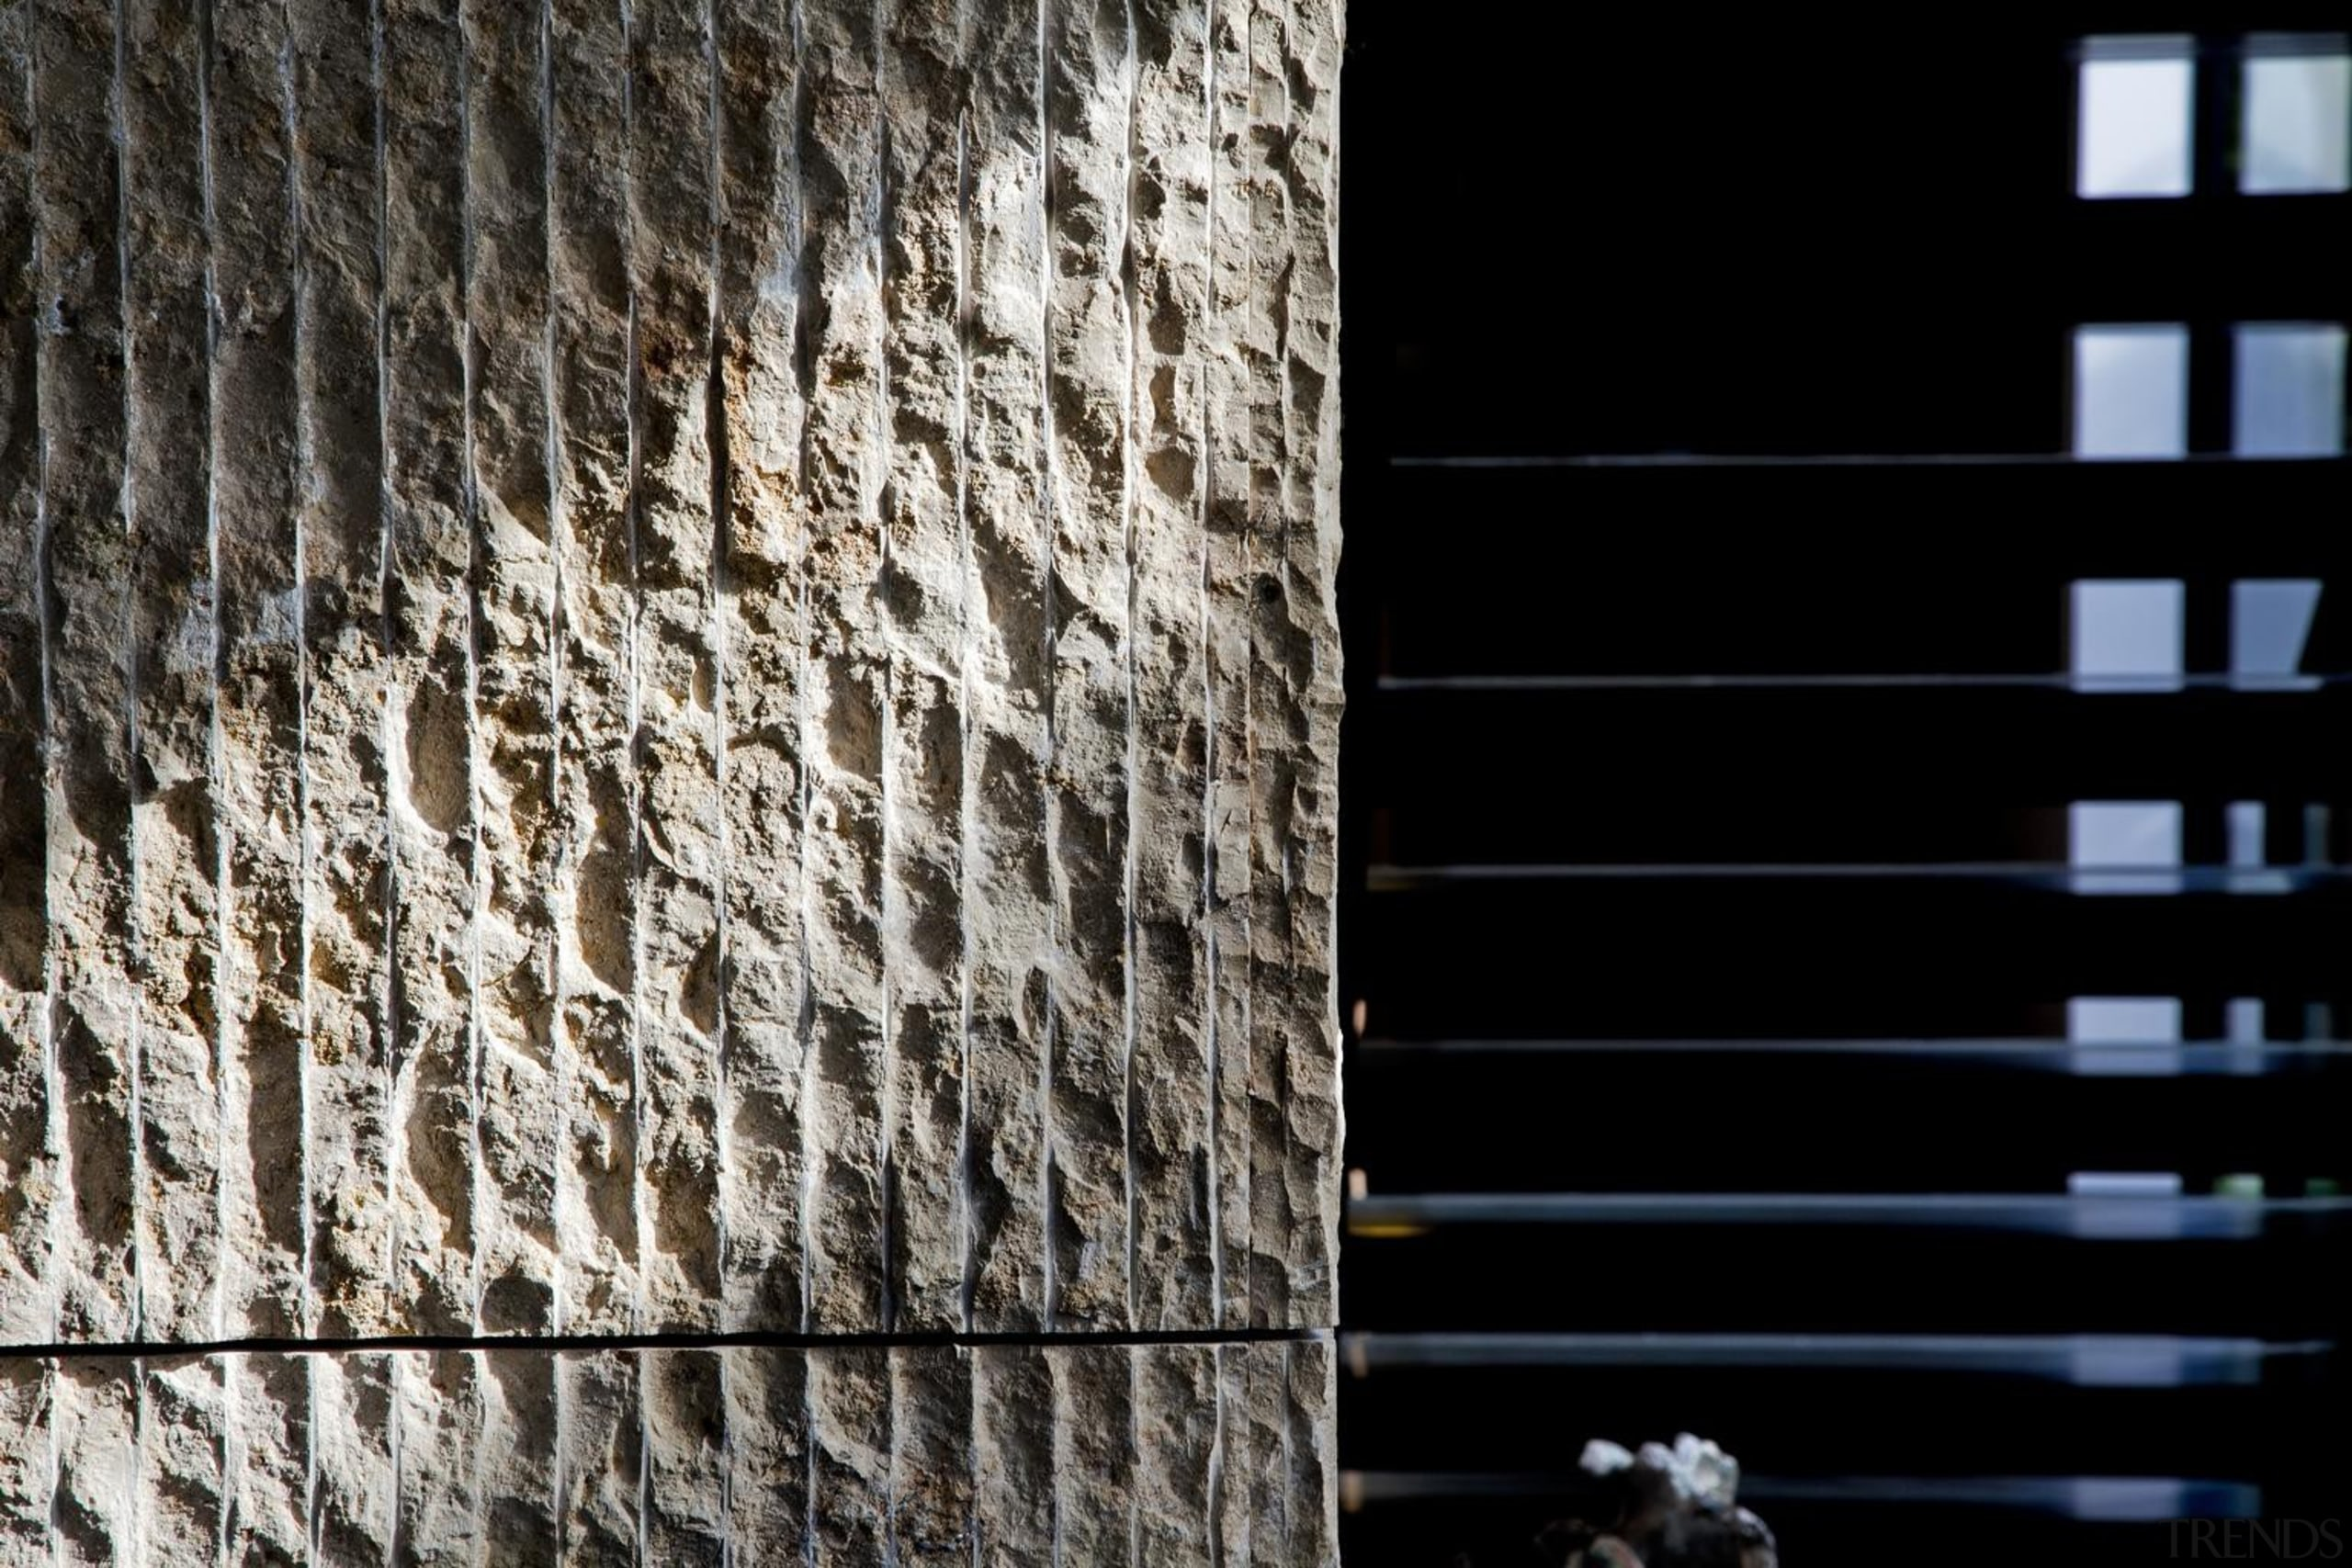 Remuera House - Remuera House - architecture | architecture, light, line, structure, texture, tourist attraction, wall, window, wood, black